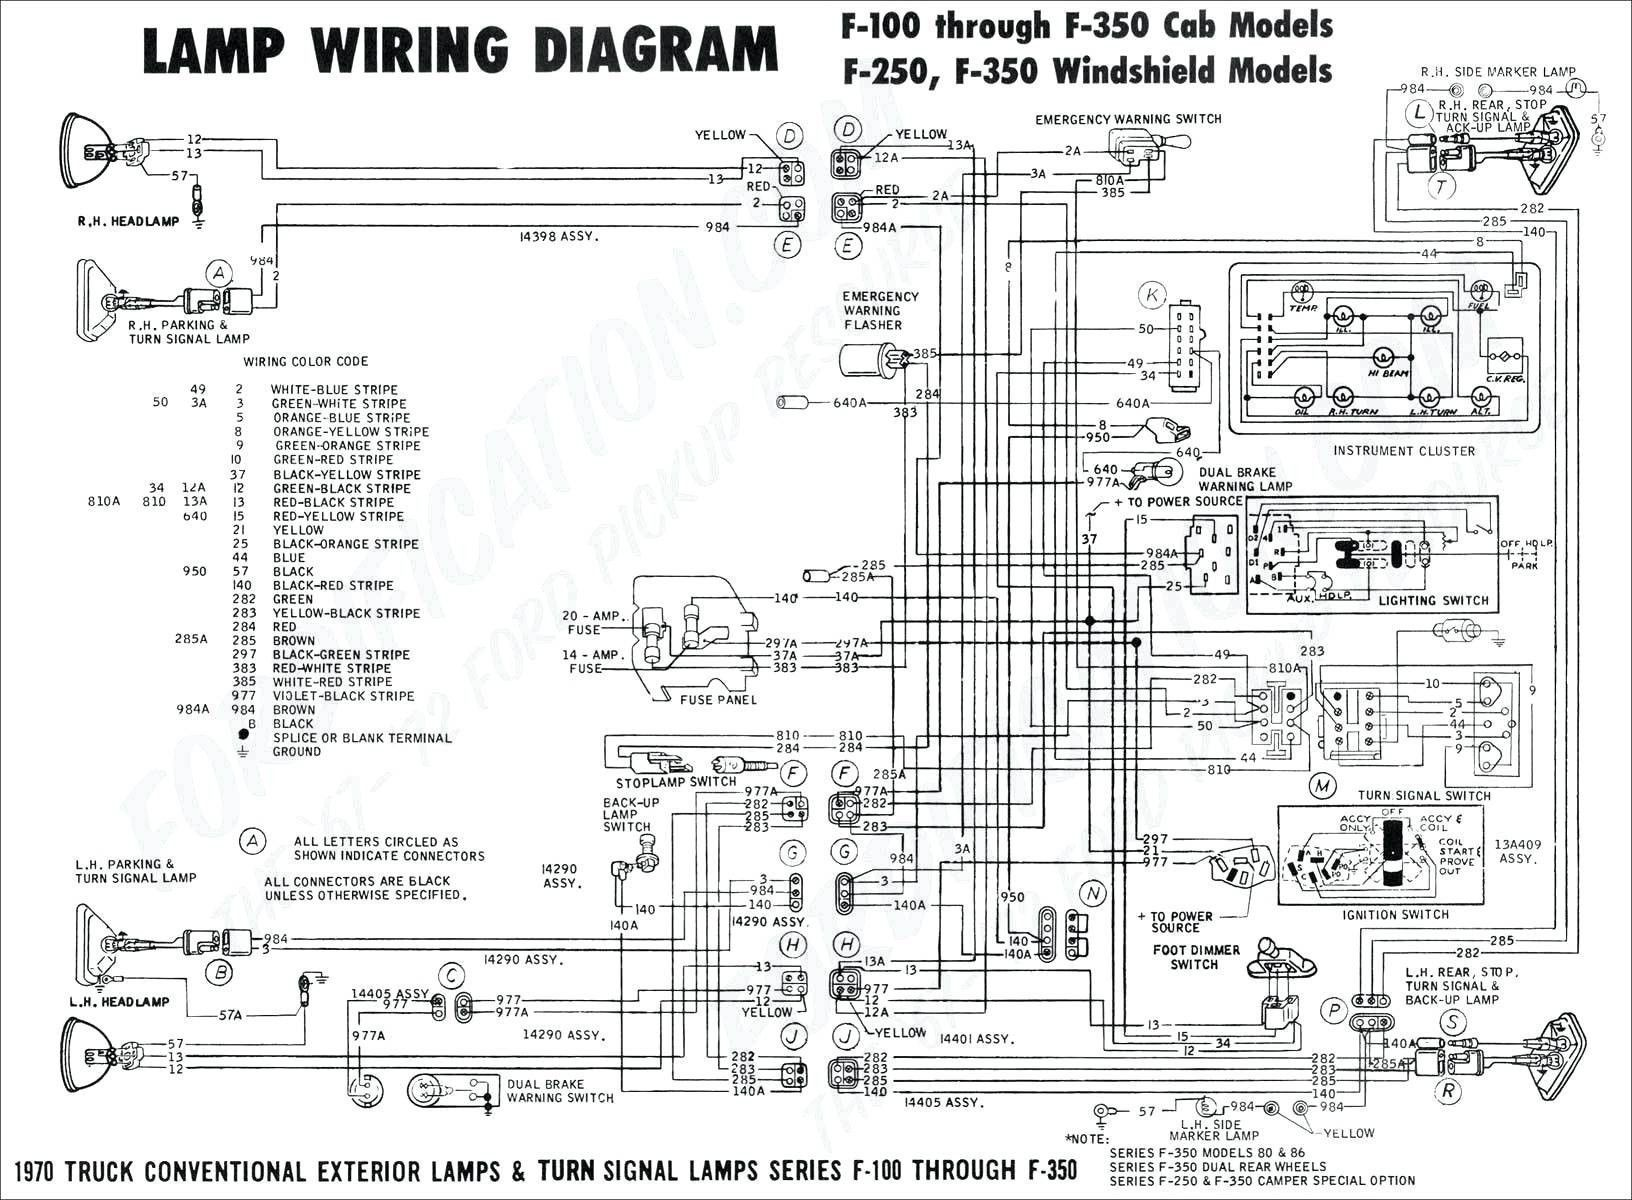 Wiring Diagram Ac Mobil Avanza #diagram #diagramtemplate ... on mc wiring, trailer wiring, flexible underground conduit wiring, sub panel wiring, motion sensor wiring, circuit wiring, diode wiring, dodge wiring, alternator wiring, a light switch wiring, tstat wiring, air conditioner compressor wiring, refrigerator wiring, safety damaged wiring, ceiling fan speed control wiring, electric guitar wiring,